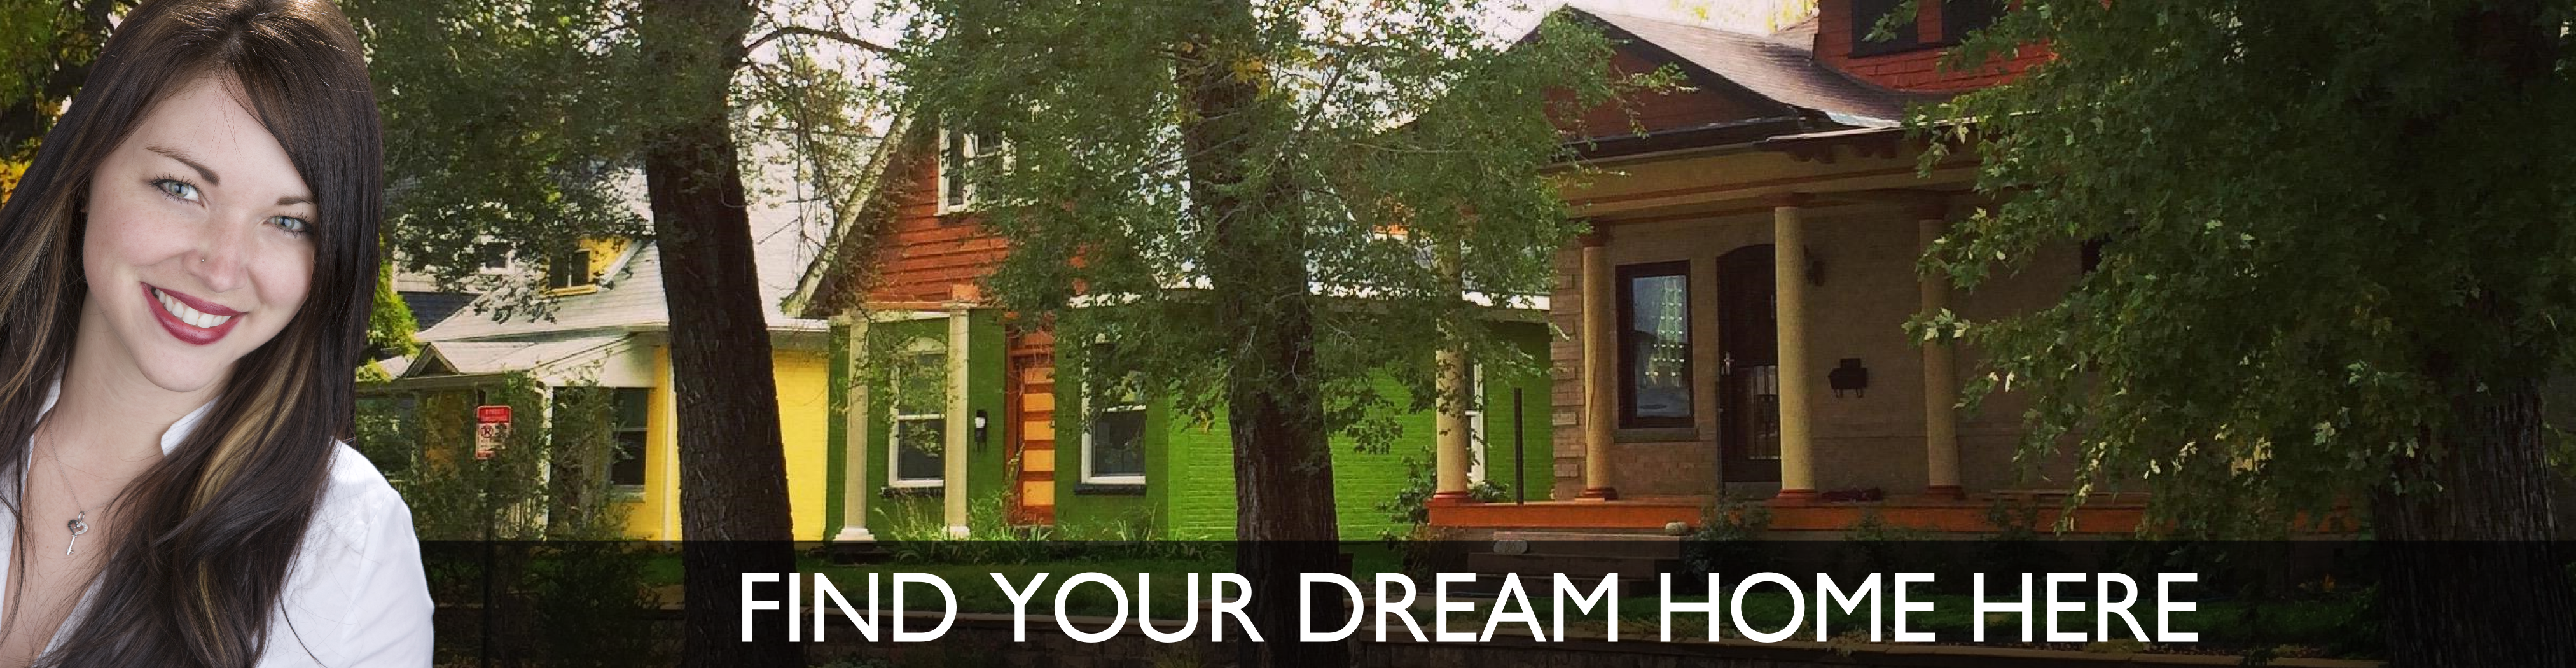 bess tracy - KW REALTY - HOME SEARCH - NORCO HOMES